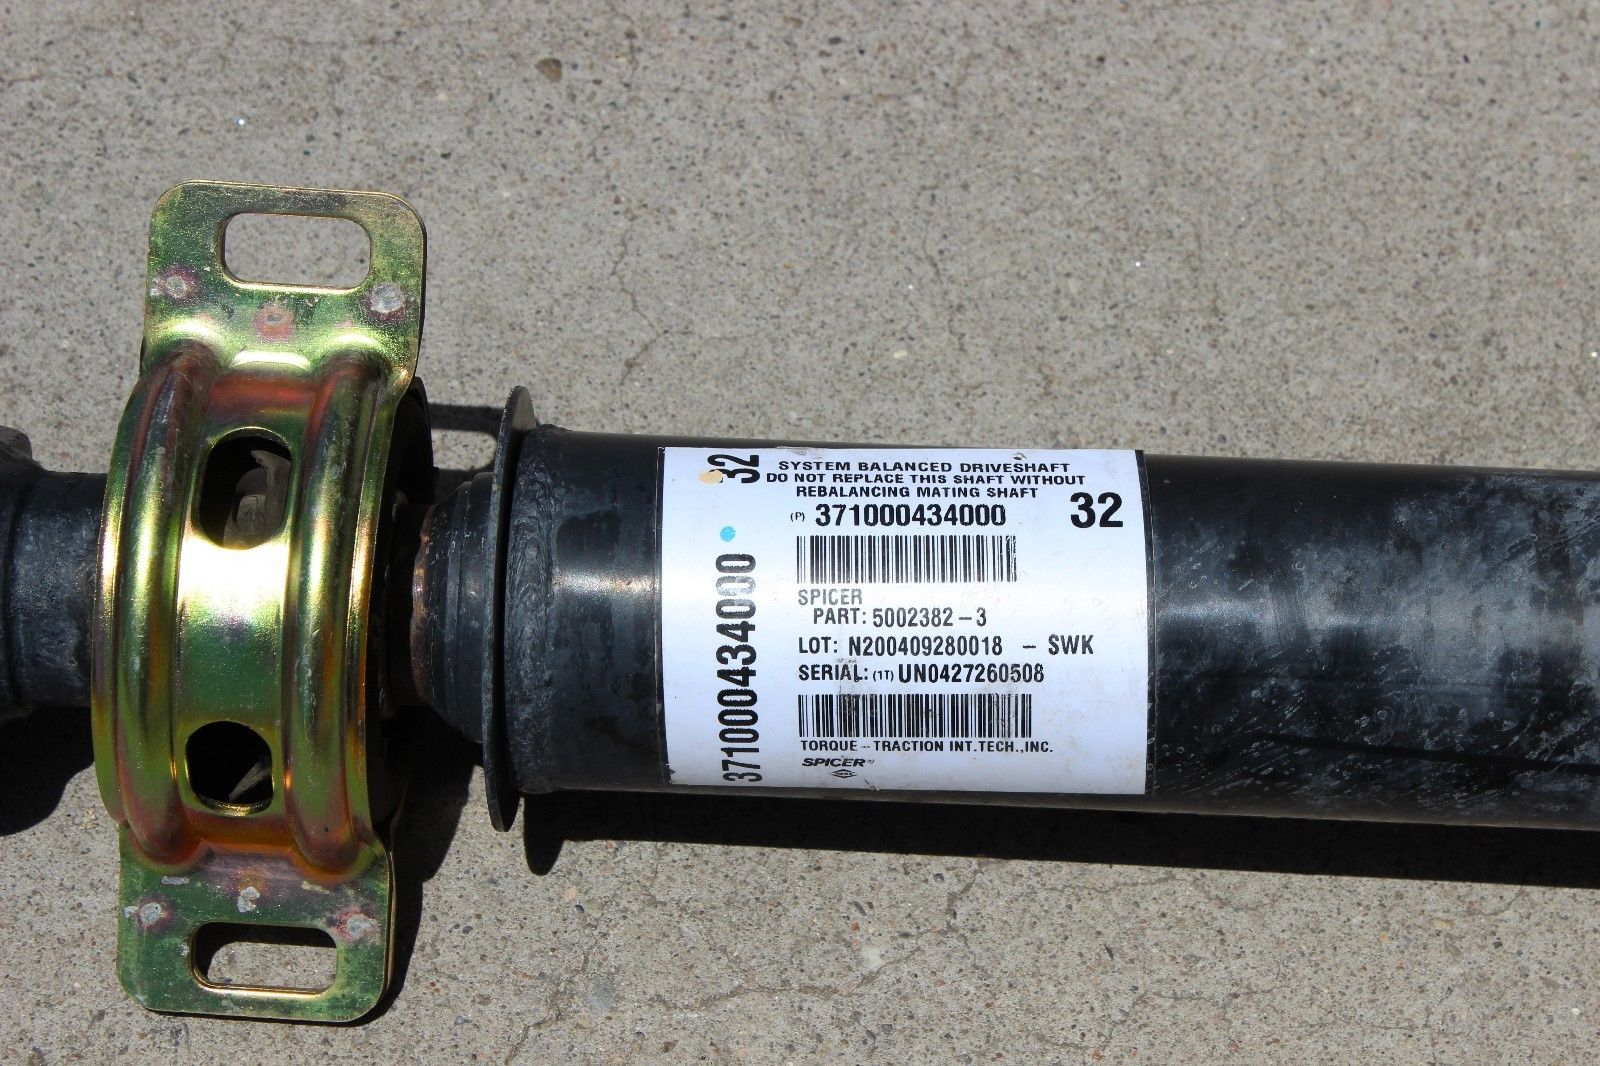 Albuquerque Drive Shaft >> 2005 2015 Toyota Tacoma Access Double Cab 4x4 4wd 4 0l Auto Rear Driveshaft 66k